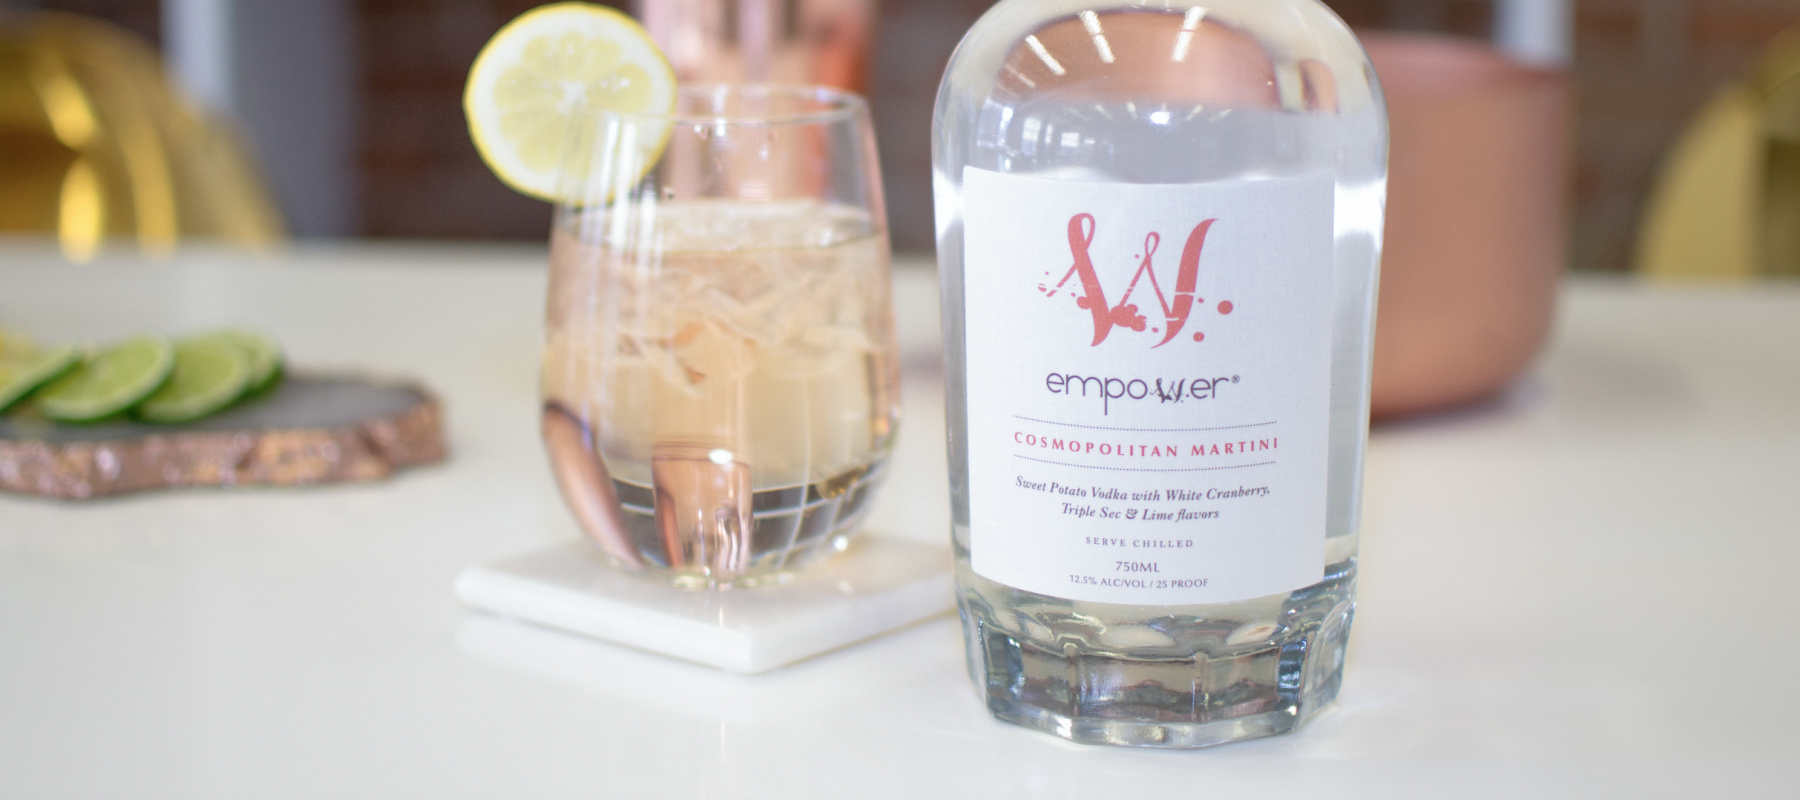 Take It Easy With Empower's Ready-to-Drink Cocktails